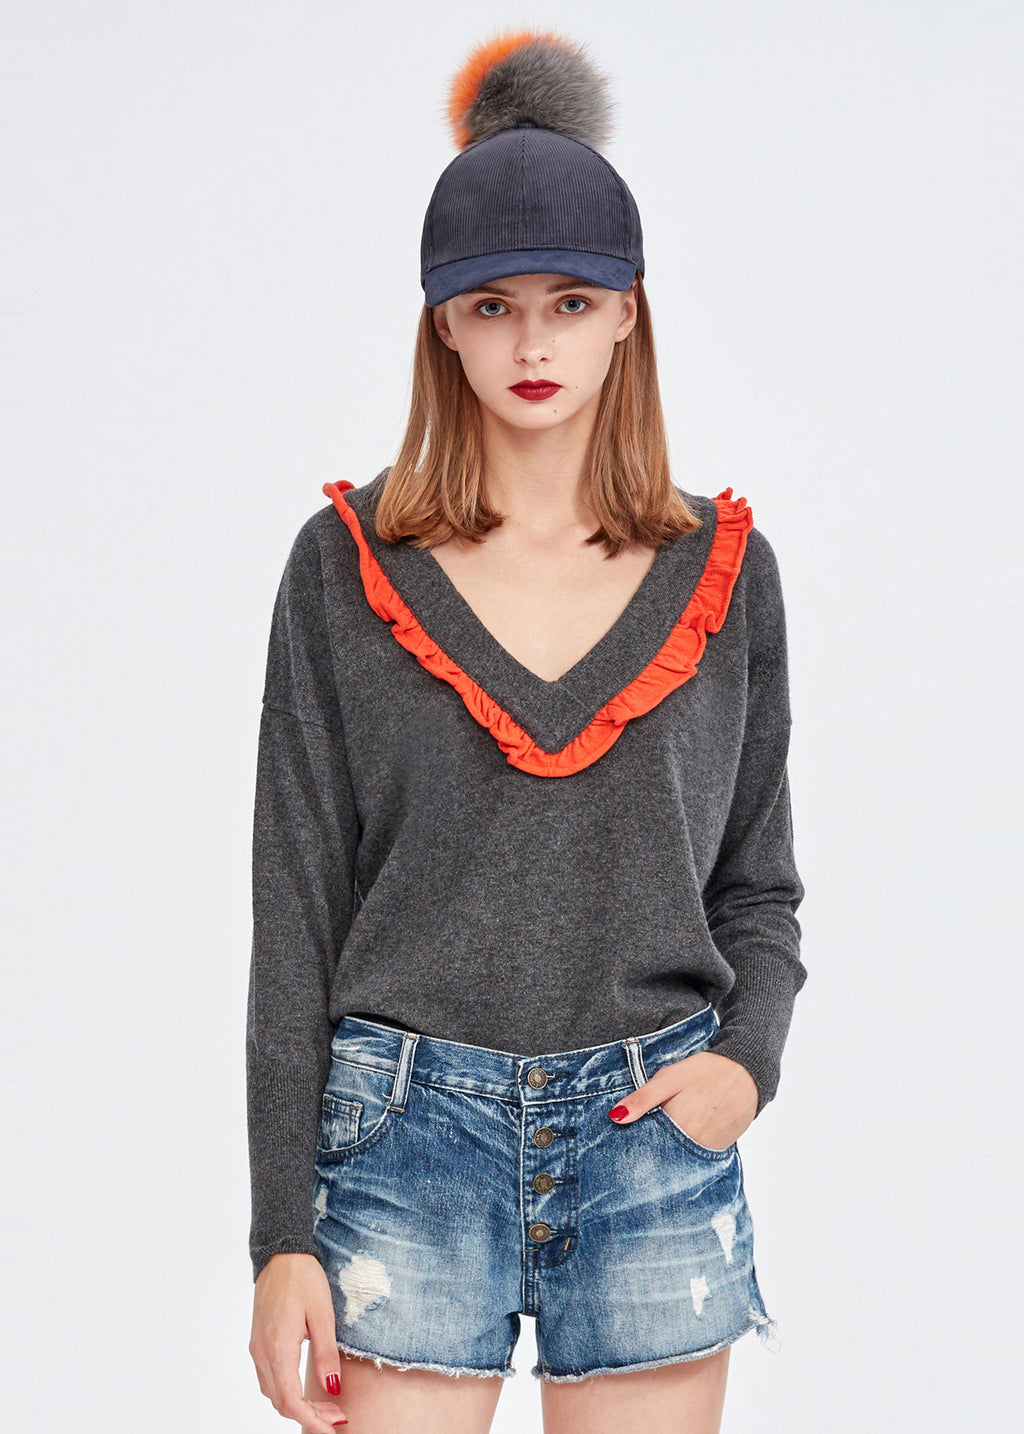 Cashmere Candy Color V-neck Top